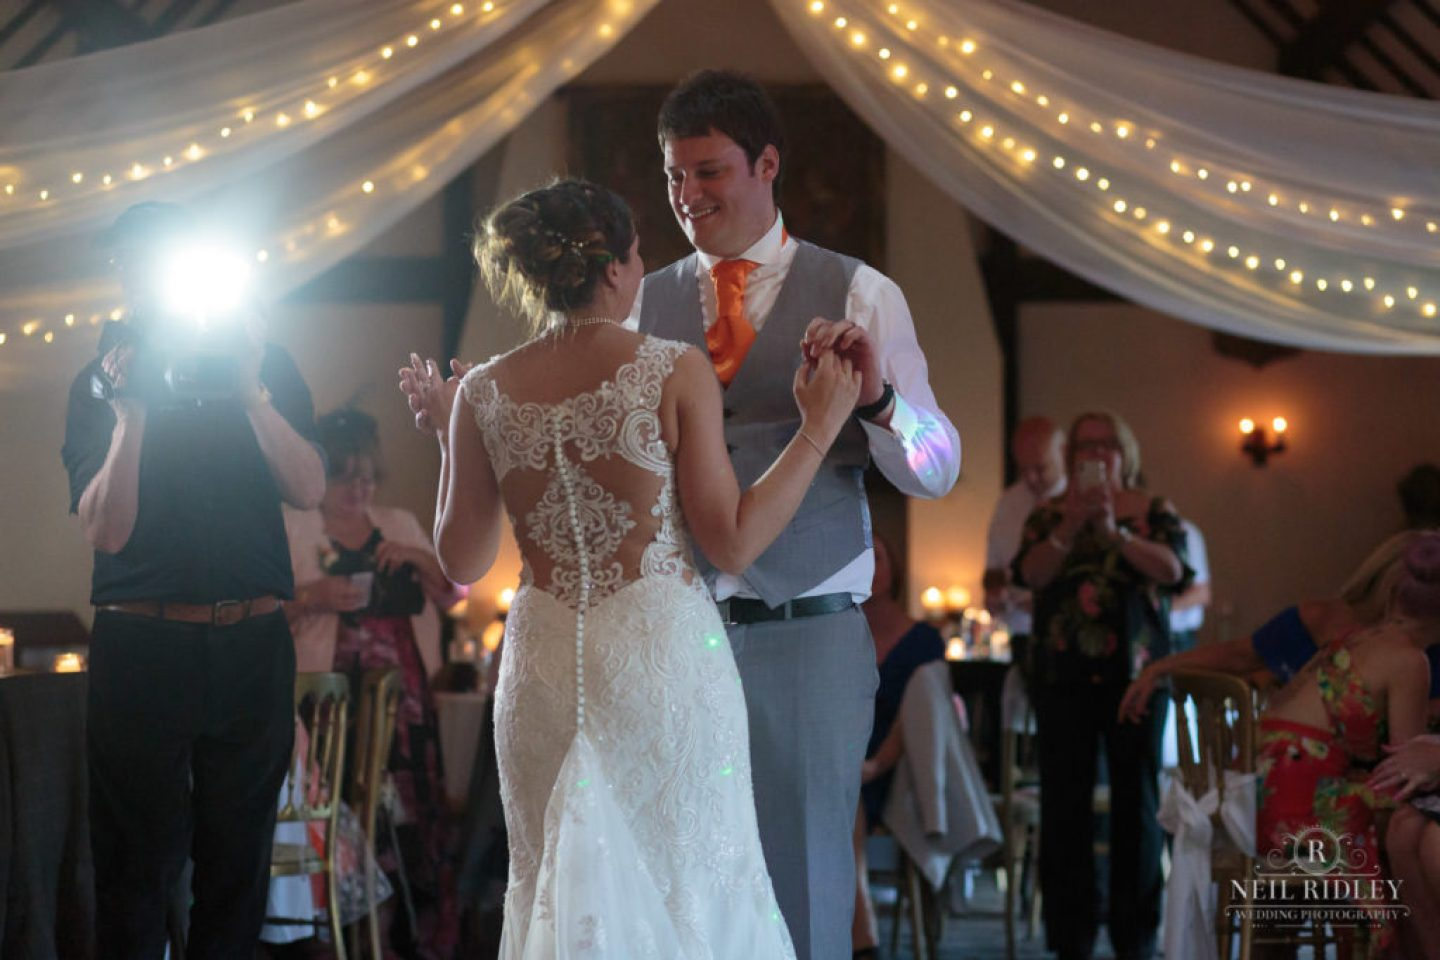 First dance with Bride and Groom at The Great Hall at Mains.